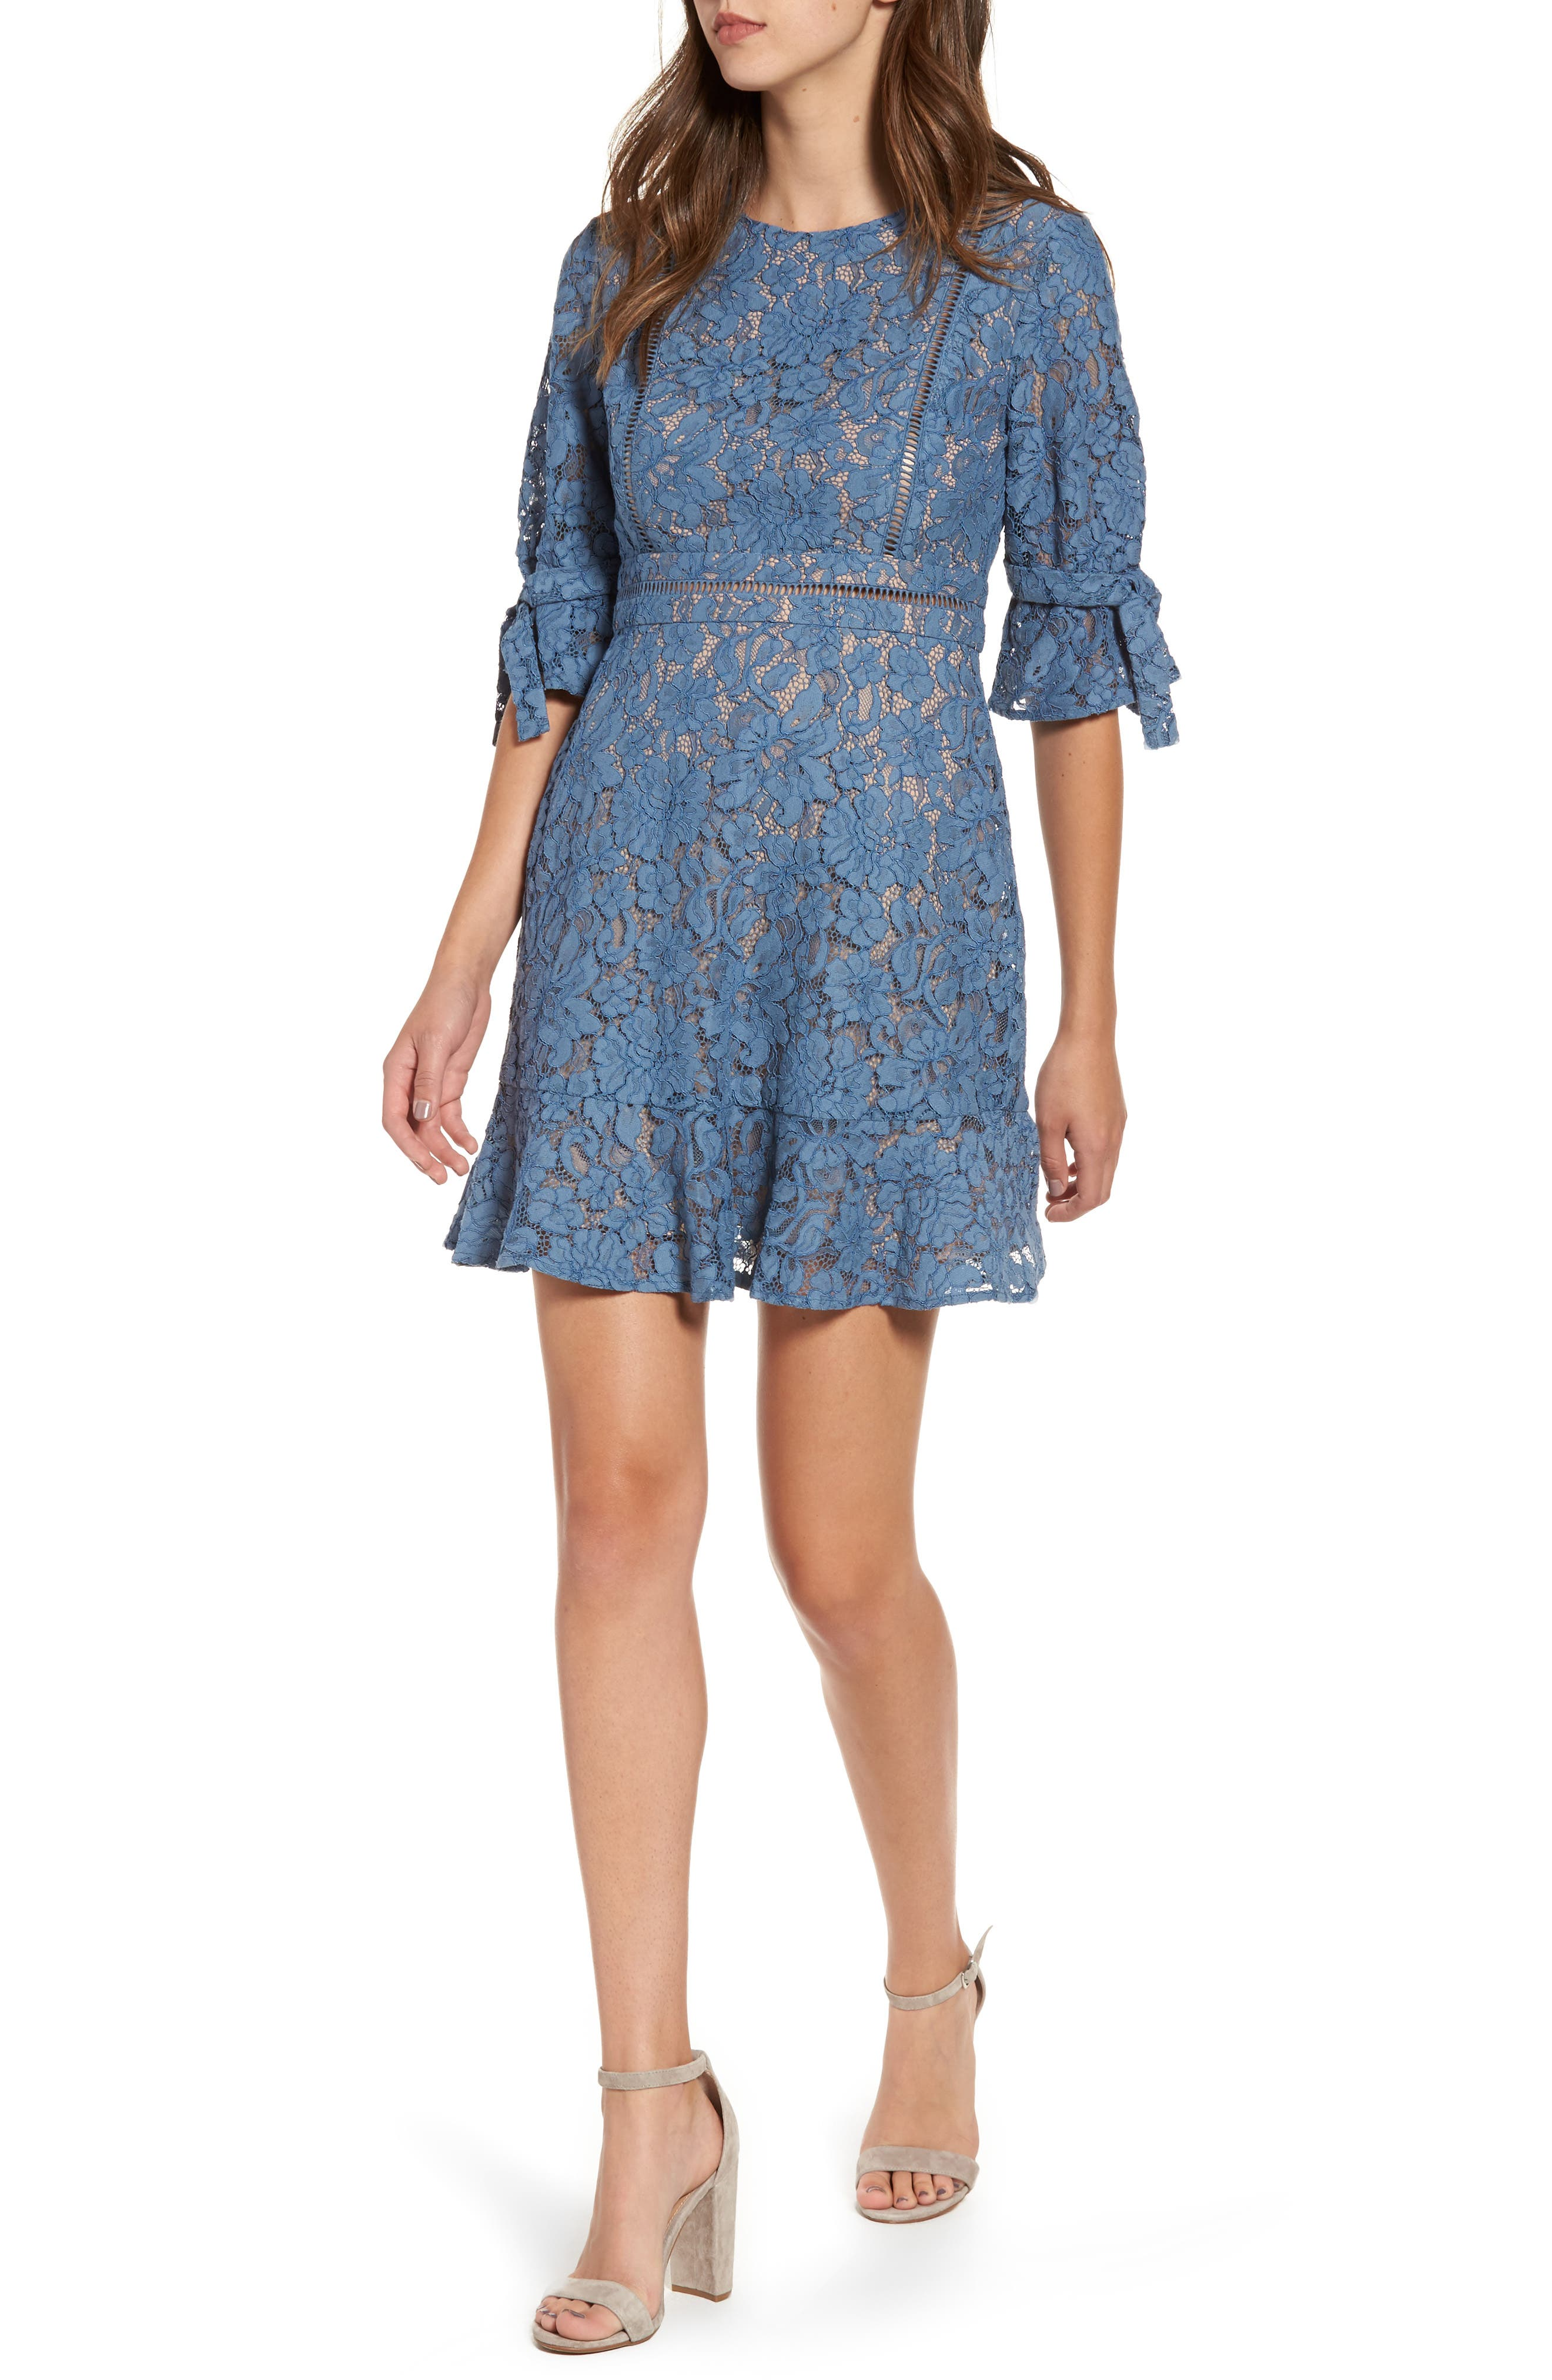 Alternate Image 1 Selected - WAYF Rene Lace Fit & Flare Dress